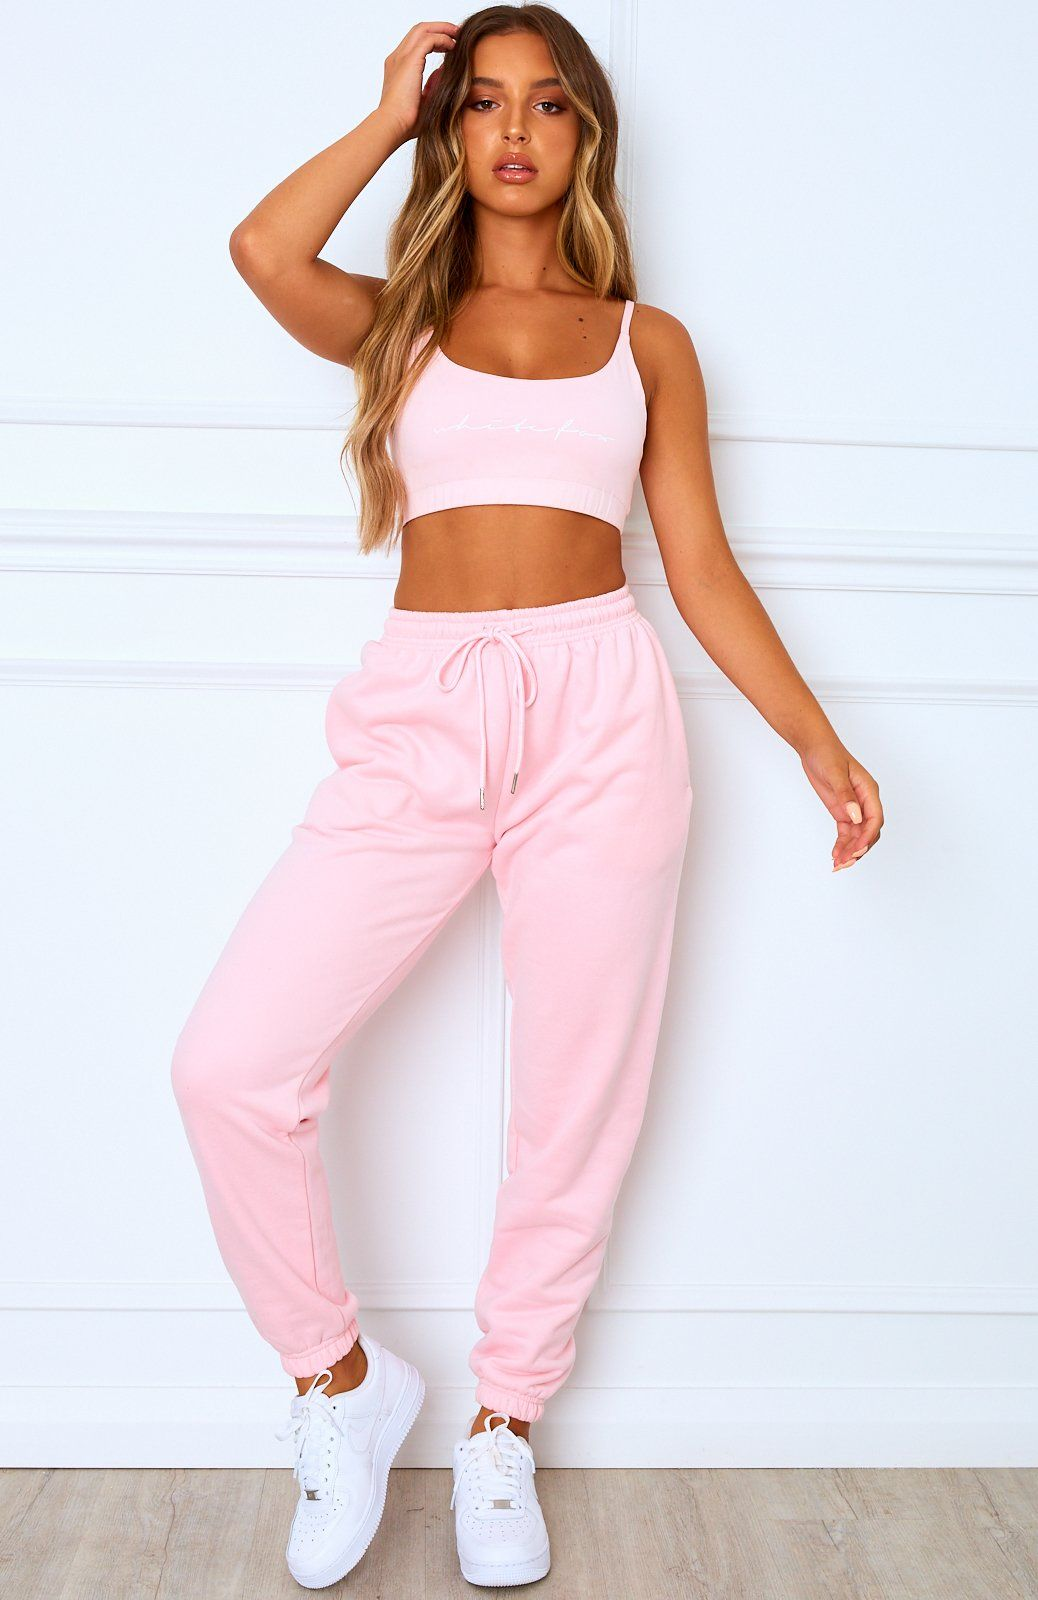 Tied Together Sweatpants Pink Teenage Fashion Outfits Girl Sweatpants Trendy Outfits